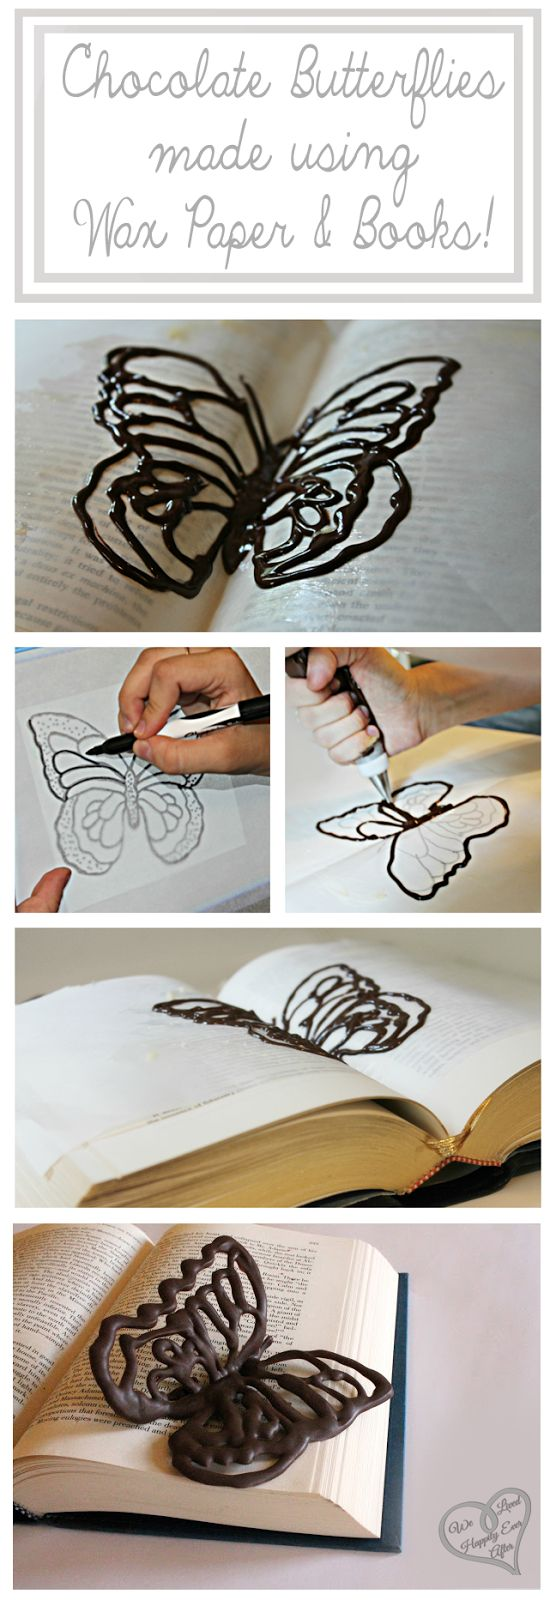 #KatieSheaDesign ♡❤ ❥ ▶ Make Chocolate Butterflies Using Wax Paper and Books!